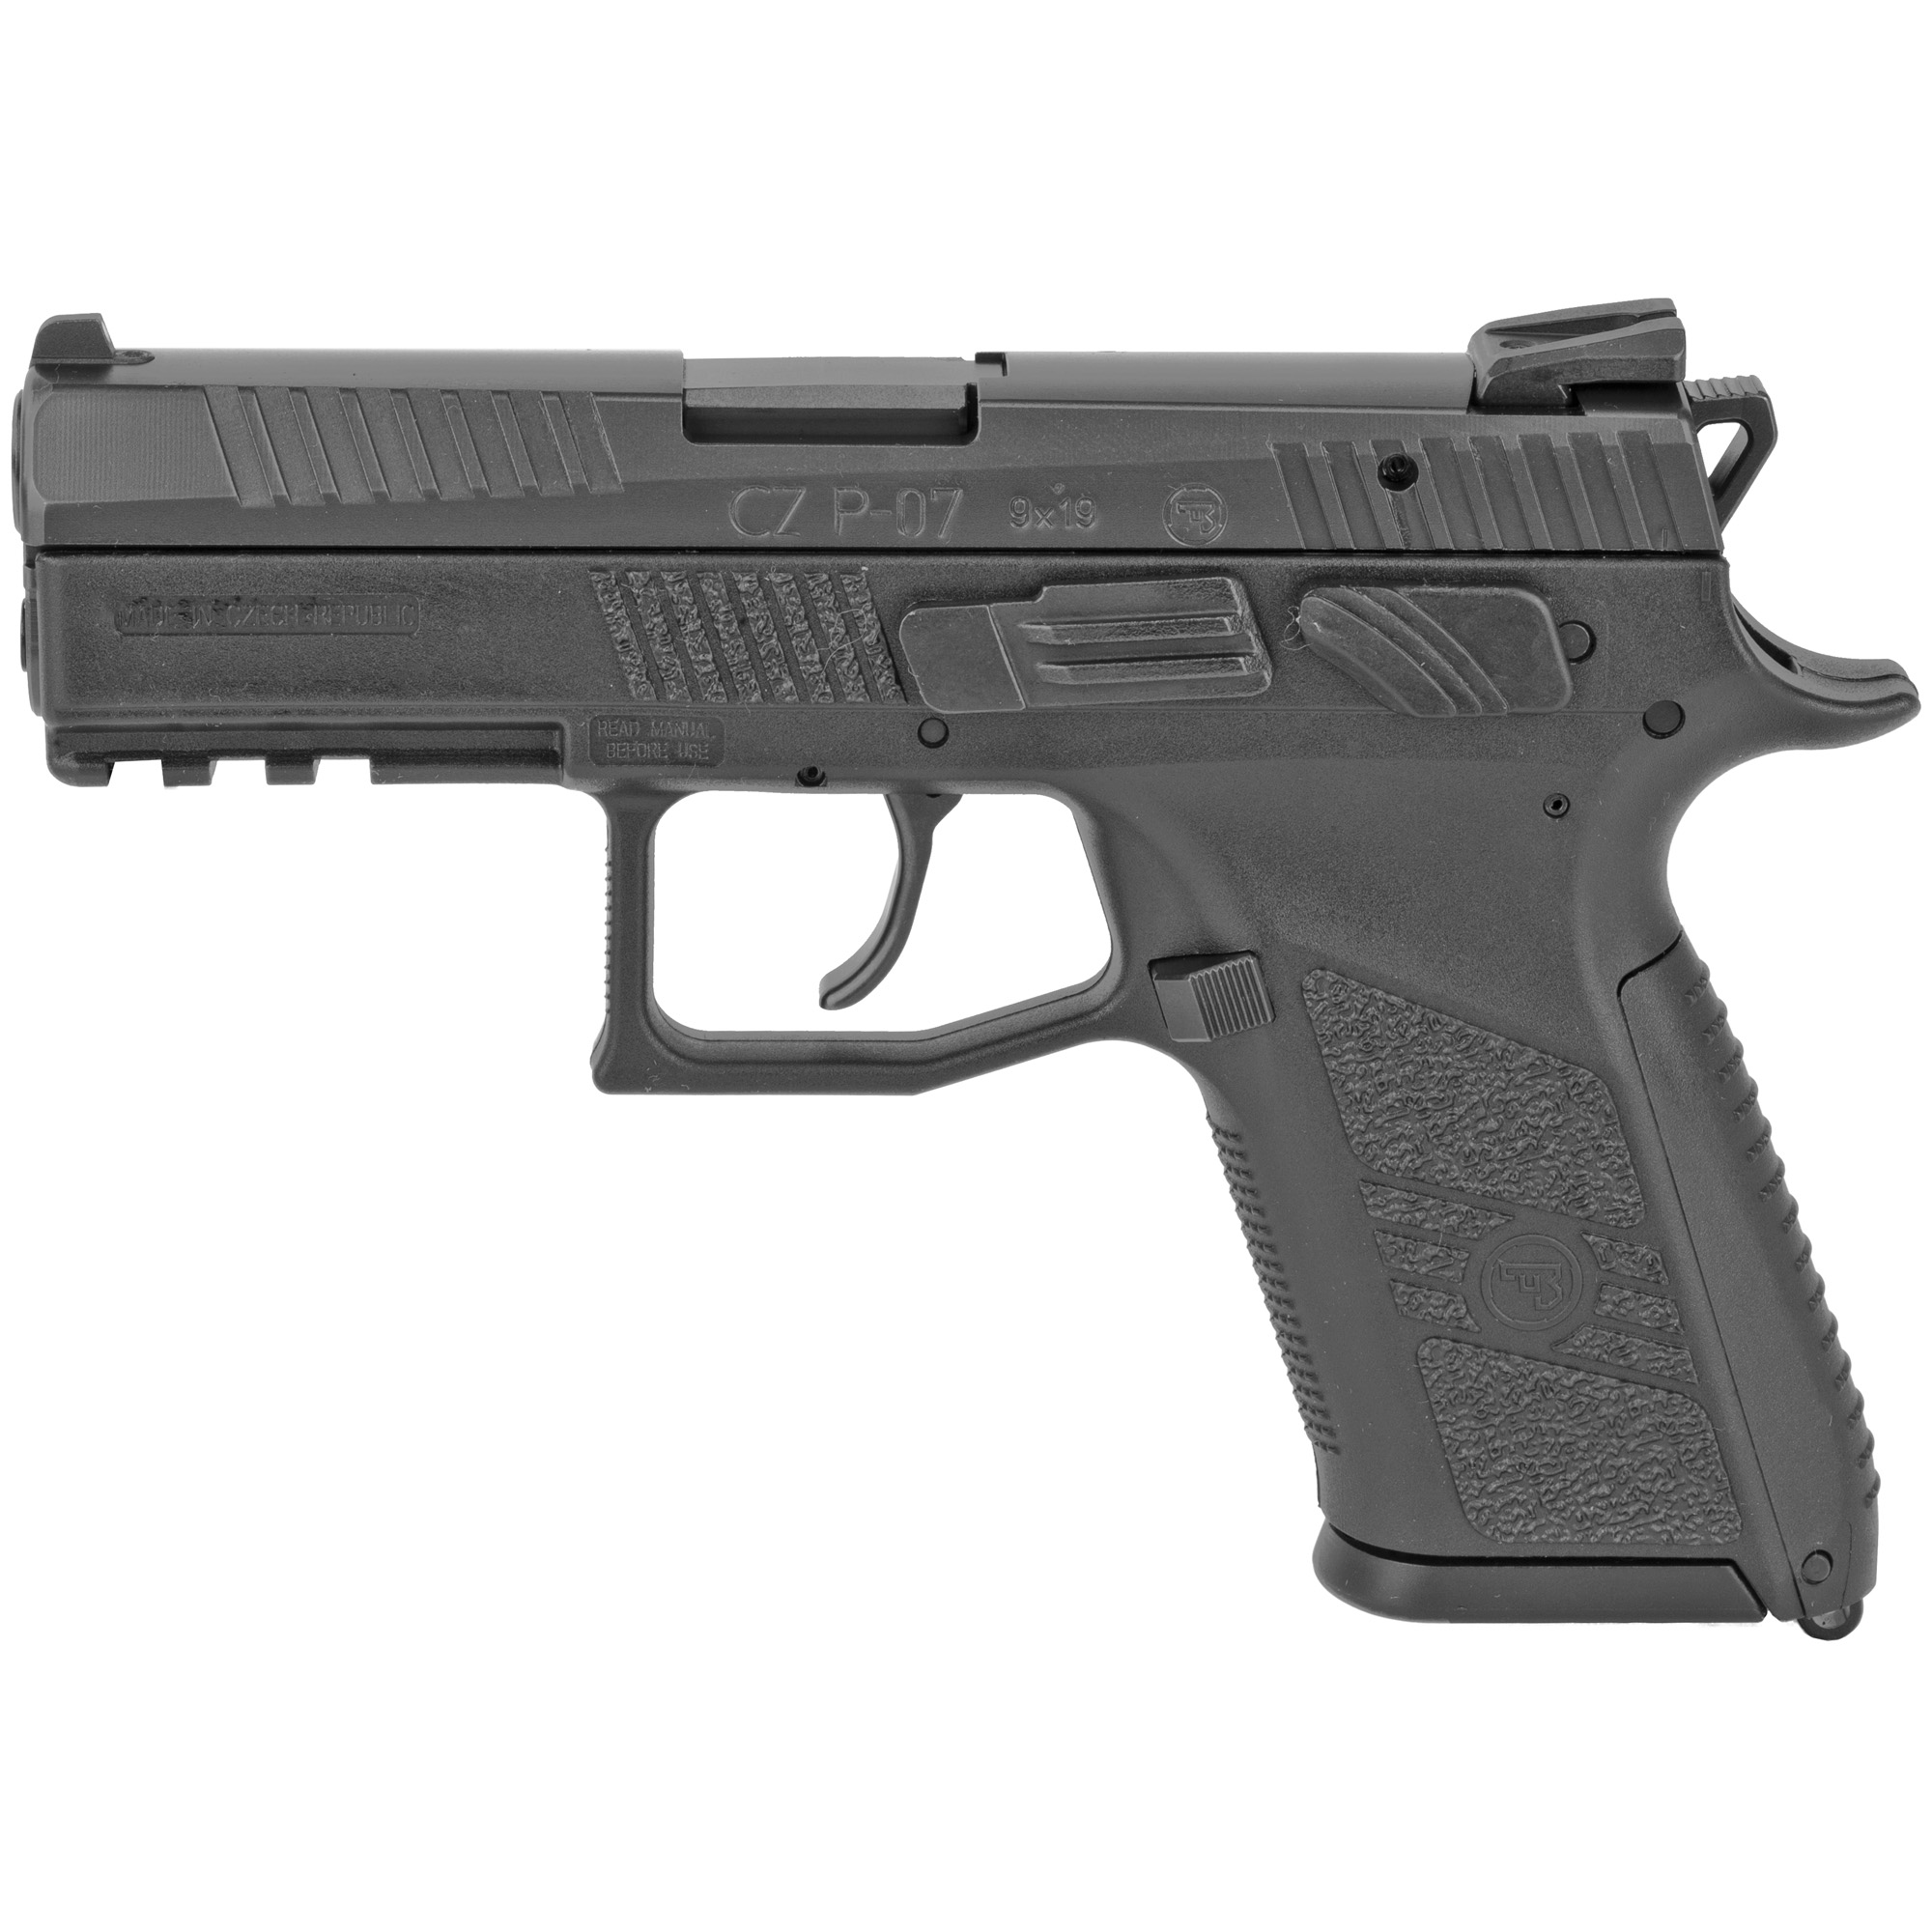 """Introduced in 2009"""" the CZ P-07 was the first handgun to feature the convertible Omega trigger system. A simplification of the CZ 75's hammer ignition method"""" the Omega's trigger parts are interlocking in nature"""" allowing full disassembly and reassembly without the need for gunsmithing experience or tools."""